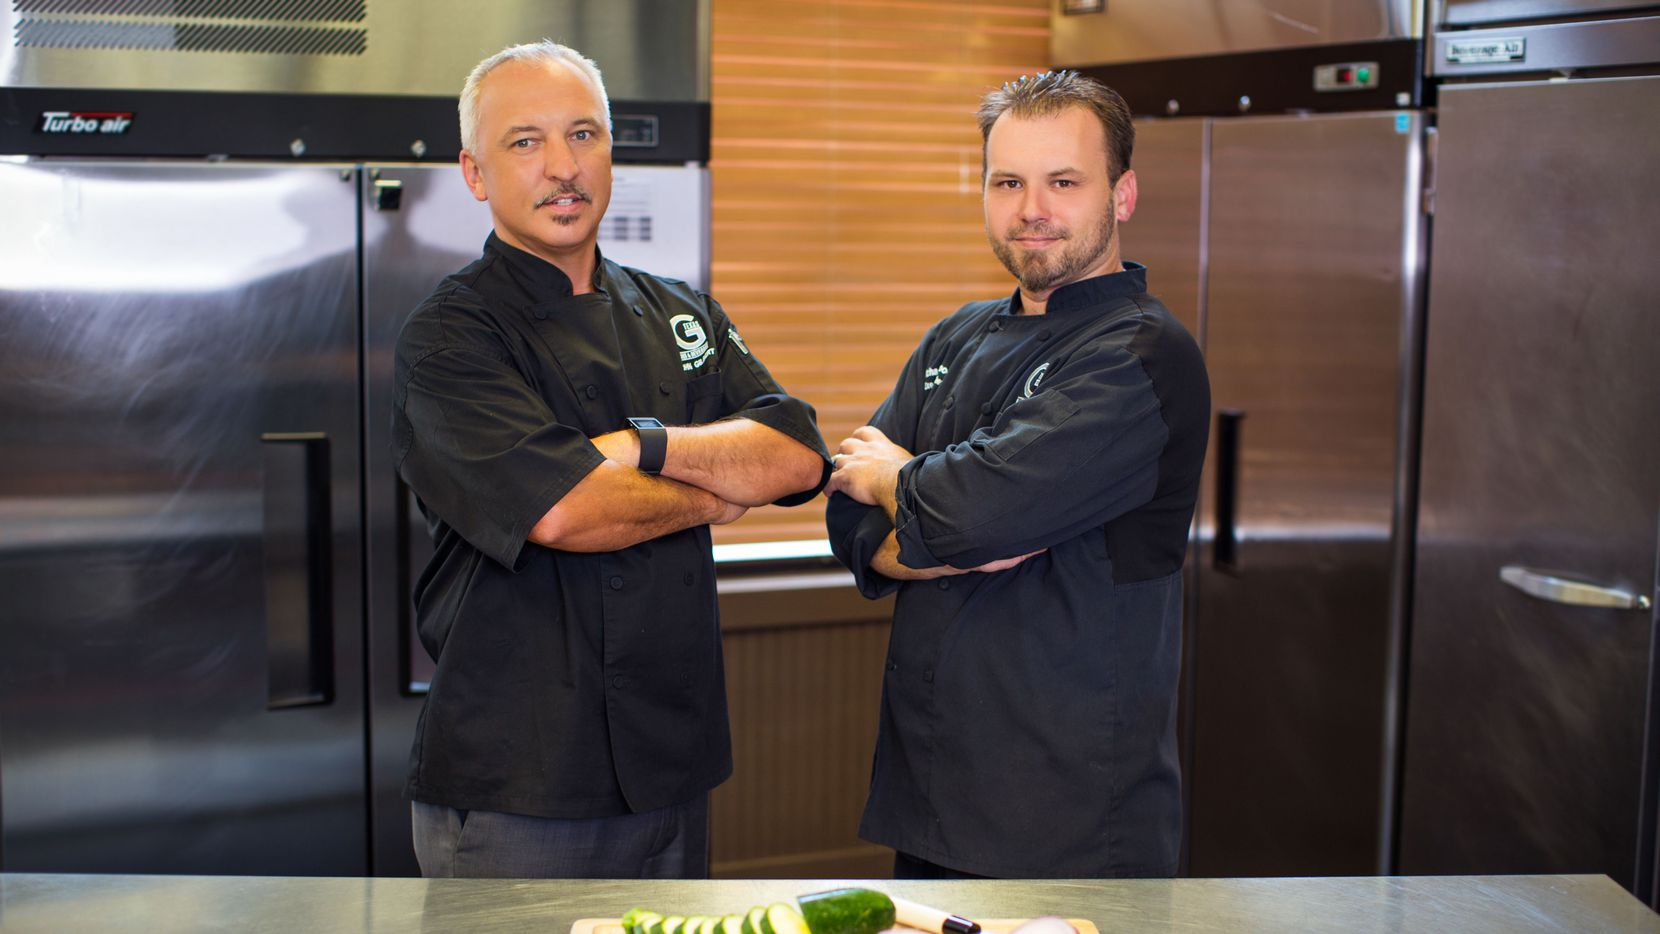 John Gilbert and executive chef Michael Gooch are creating The Artisan, expected to open in December 2017 in the Dallas Arts District.